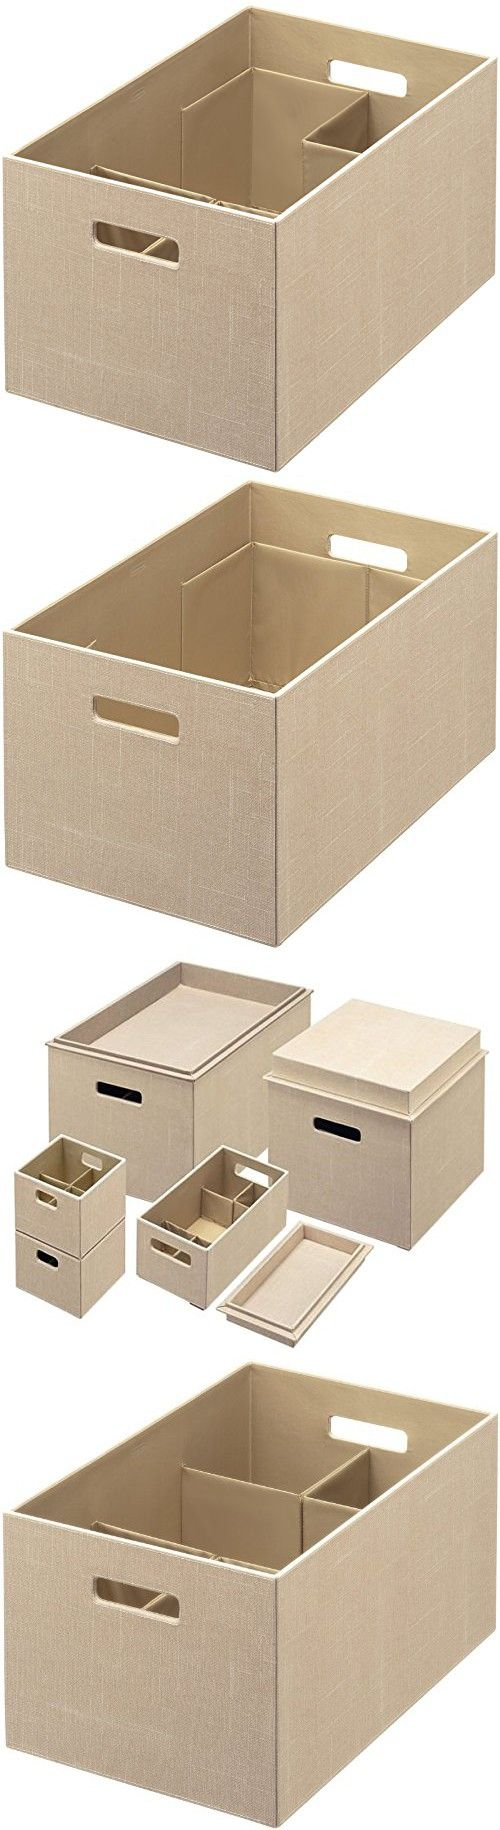 Extra large cardboard storage boxes - Rubbermaid Bento Storage Box With Flex Dividers Extra Large Loose Linen 1791949